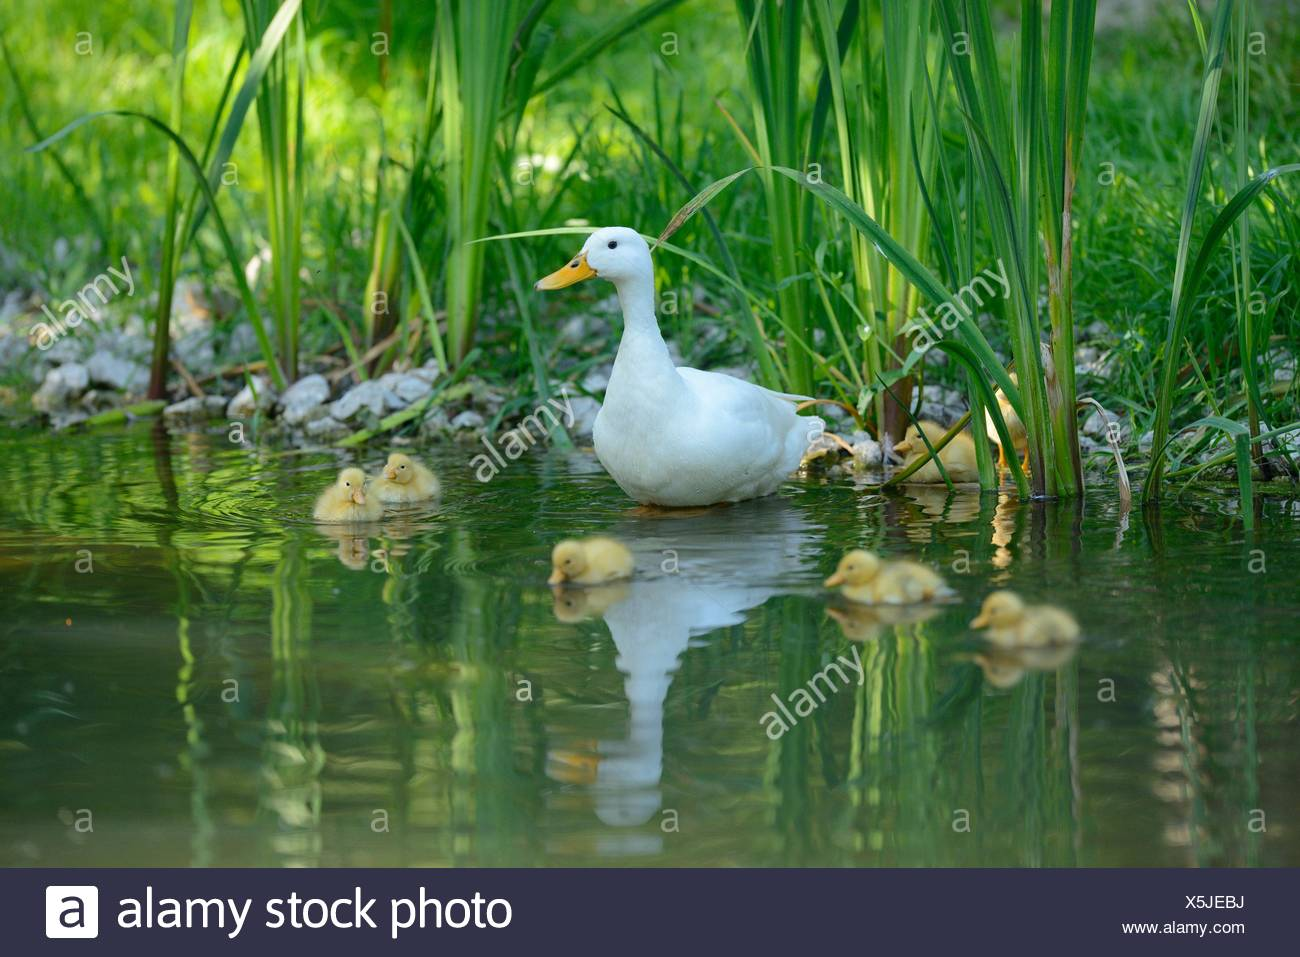 Long Island duck mother with her chicks at lakeshore - Stock Image